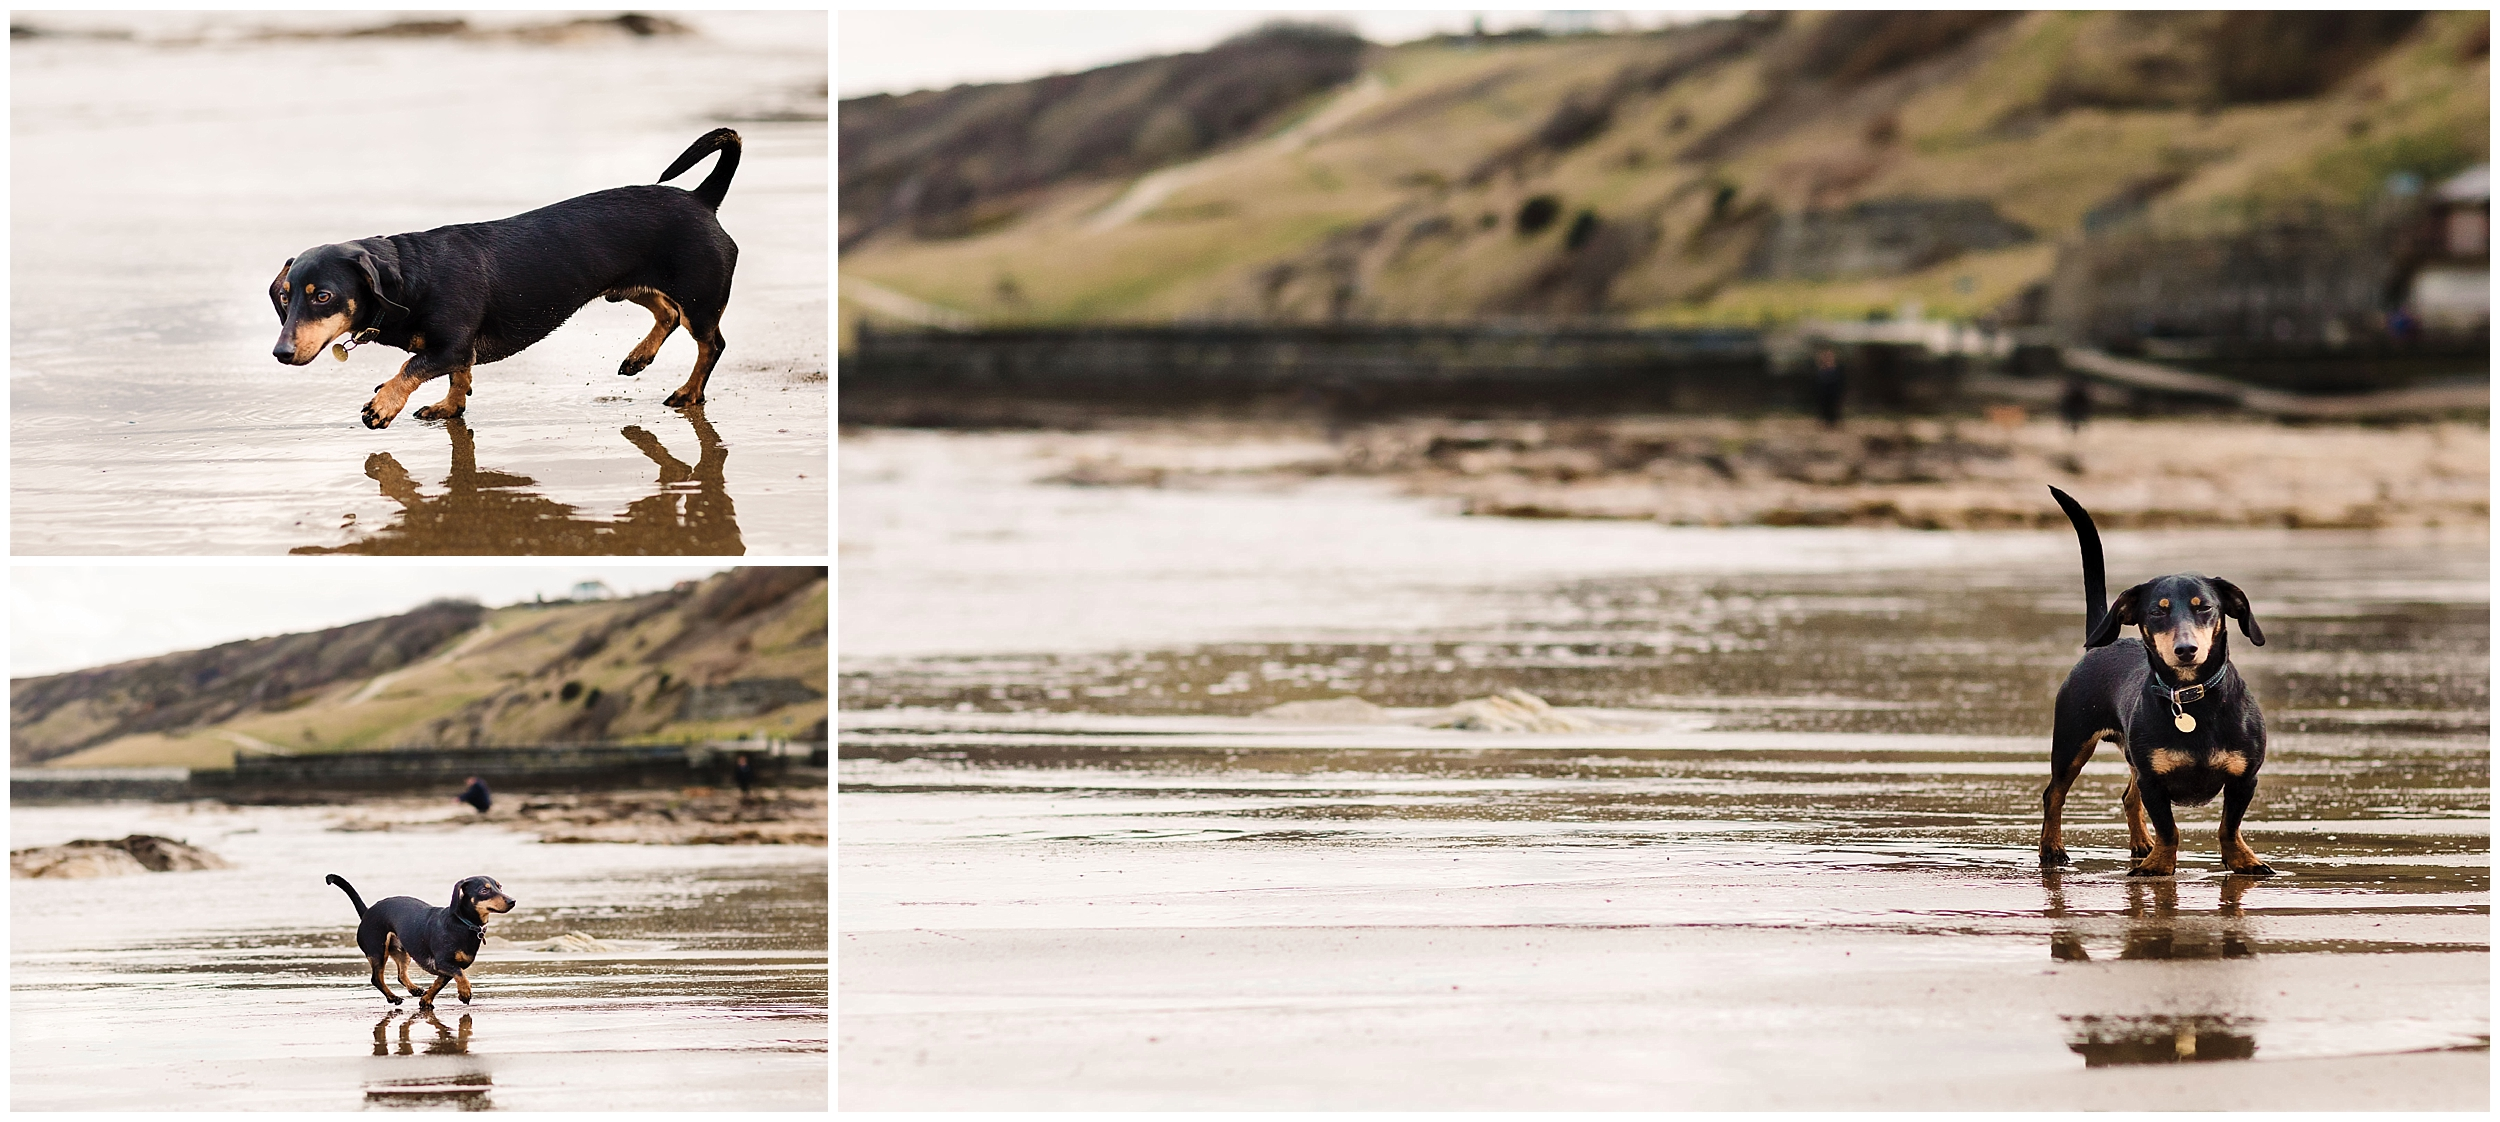 A dog playing on Scarborough beach